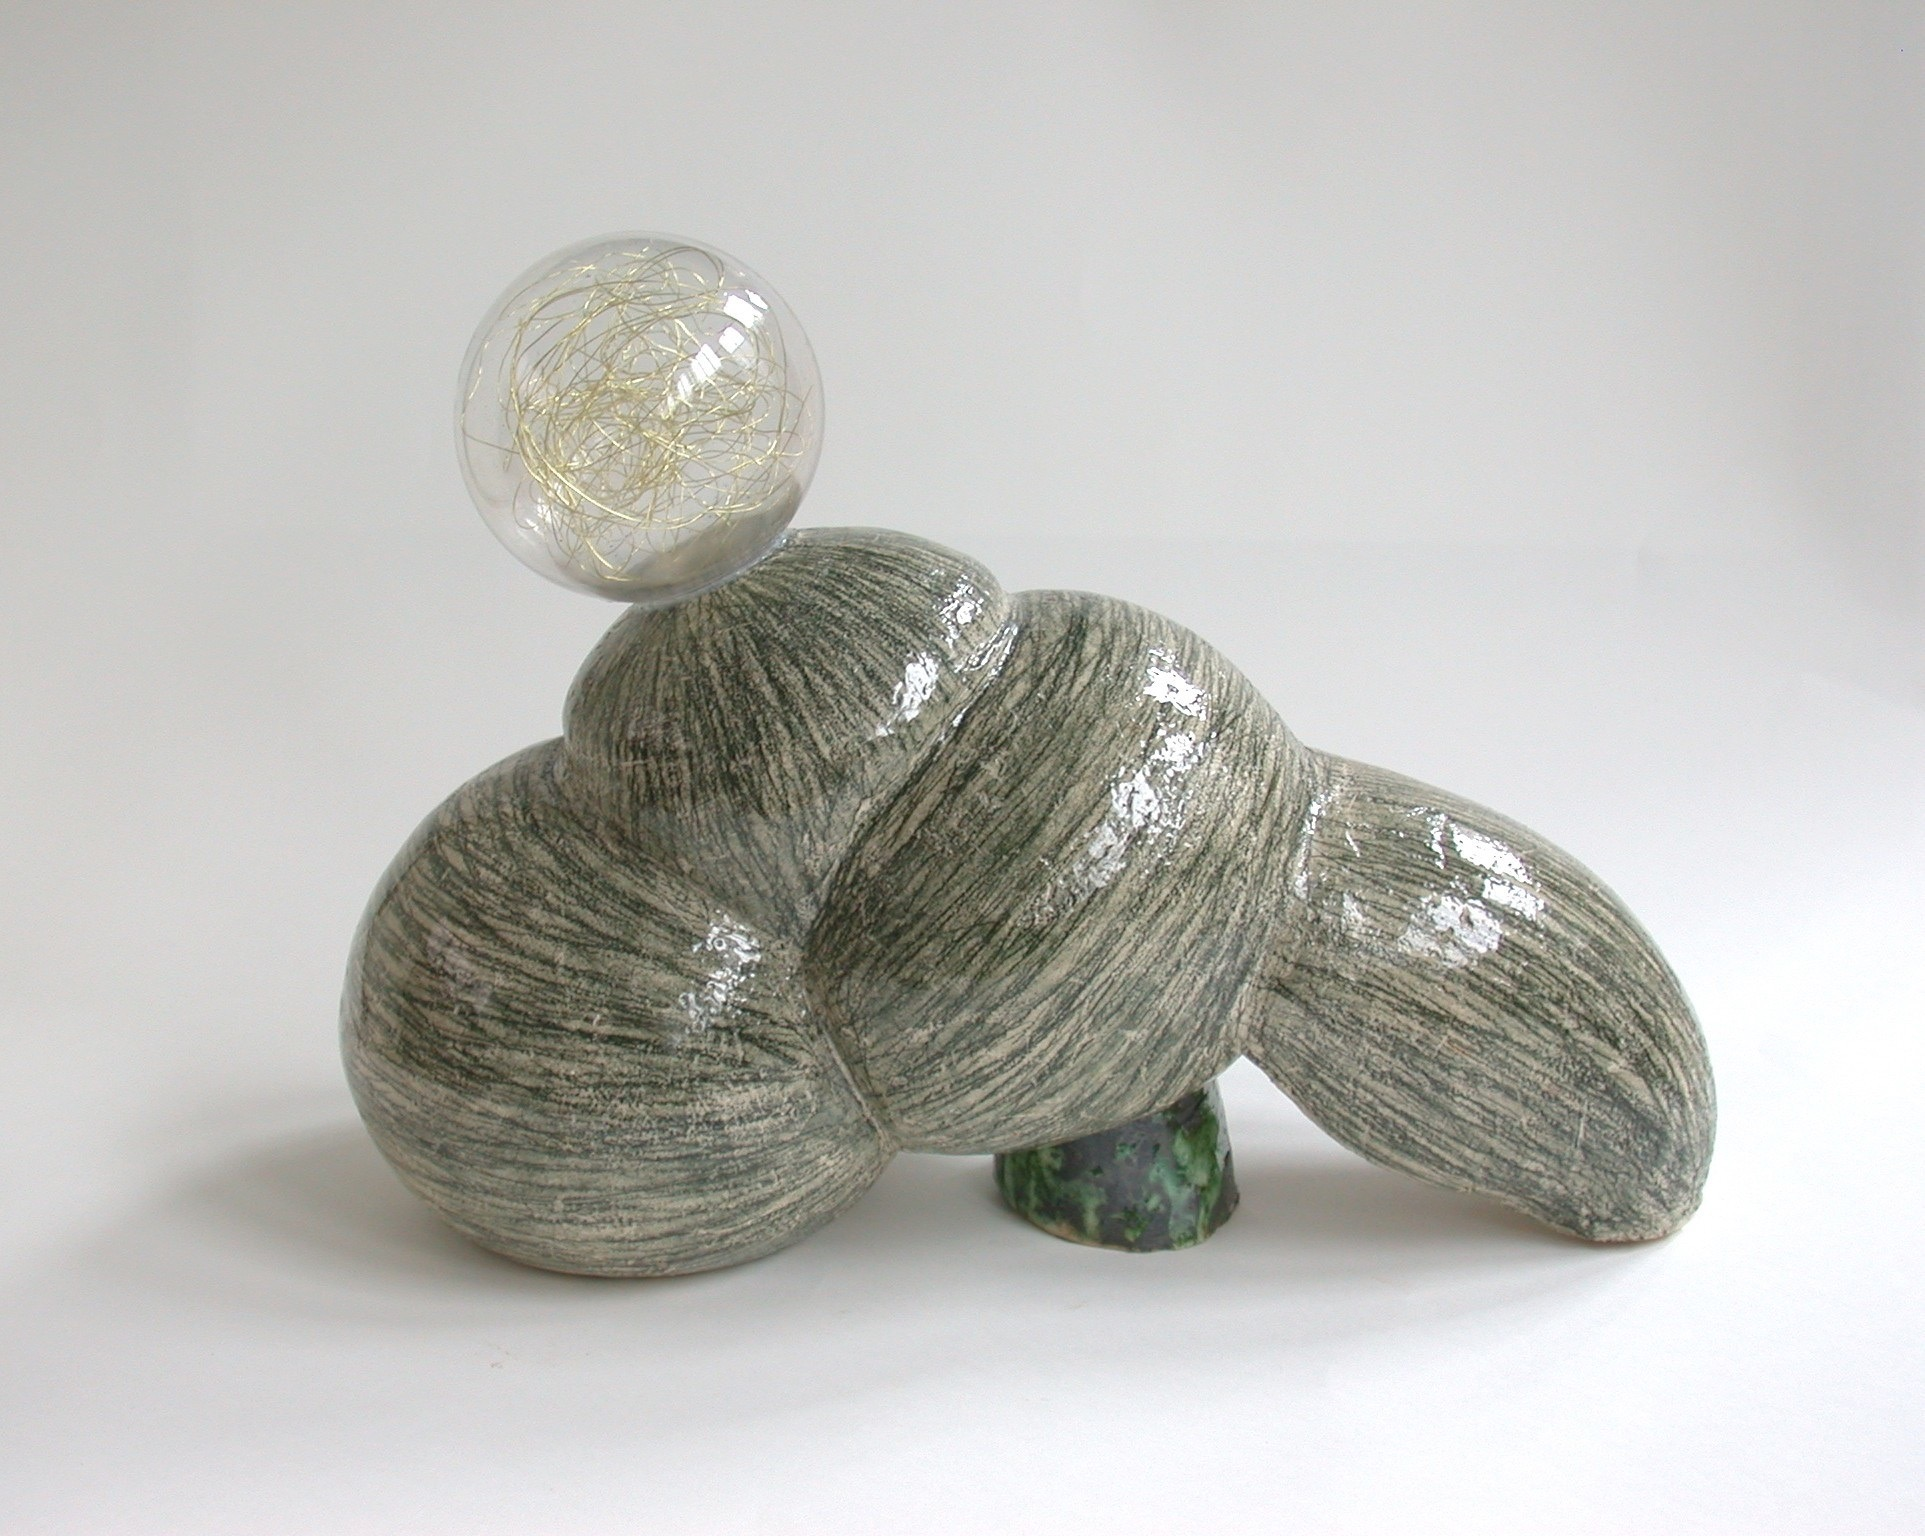 Transformer, ceramic, glass, copper wire, glaze, 29 X 39 X 18 cm, 2004